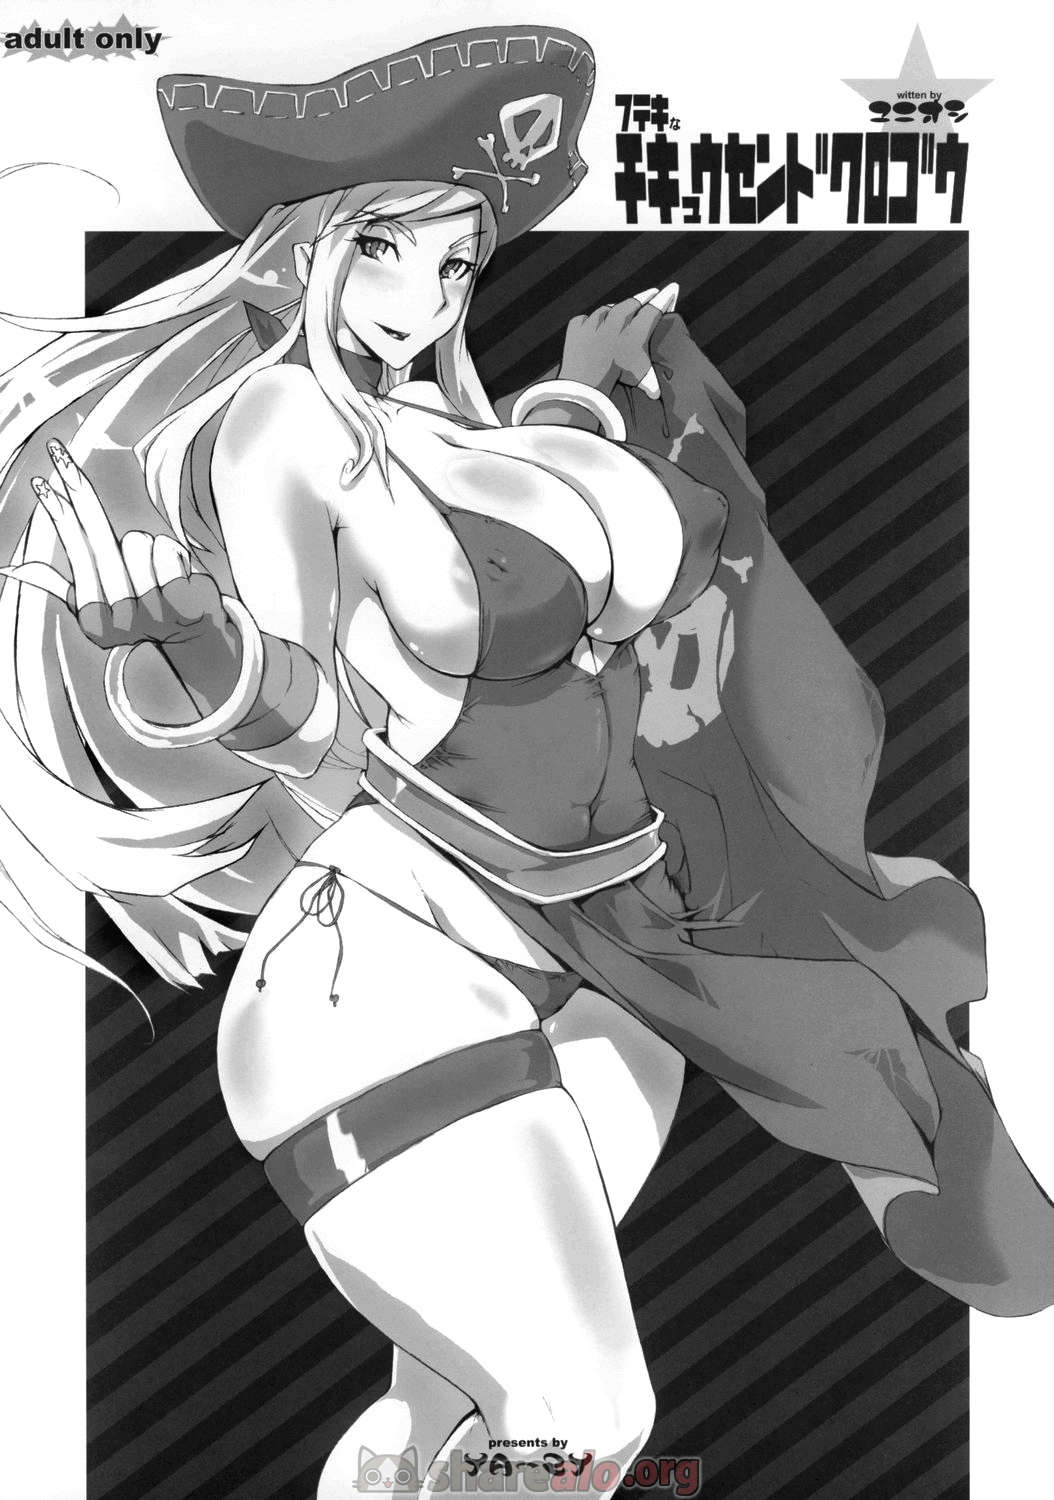 [ Futeki na Chikyuu sen Dokuro gou (King of Fighters) ]: Comics Porno Manga Hentai [ zIERFa5A ]